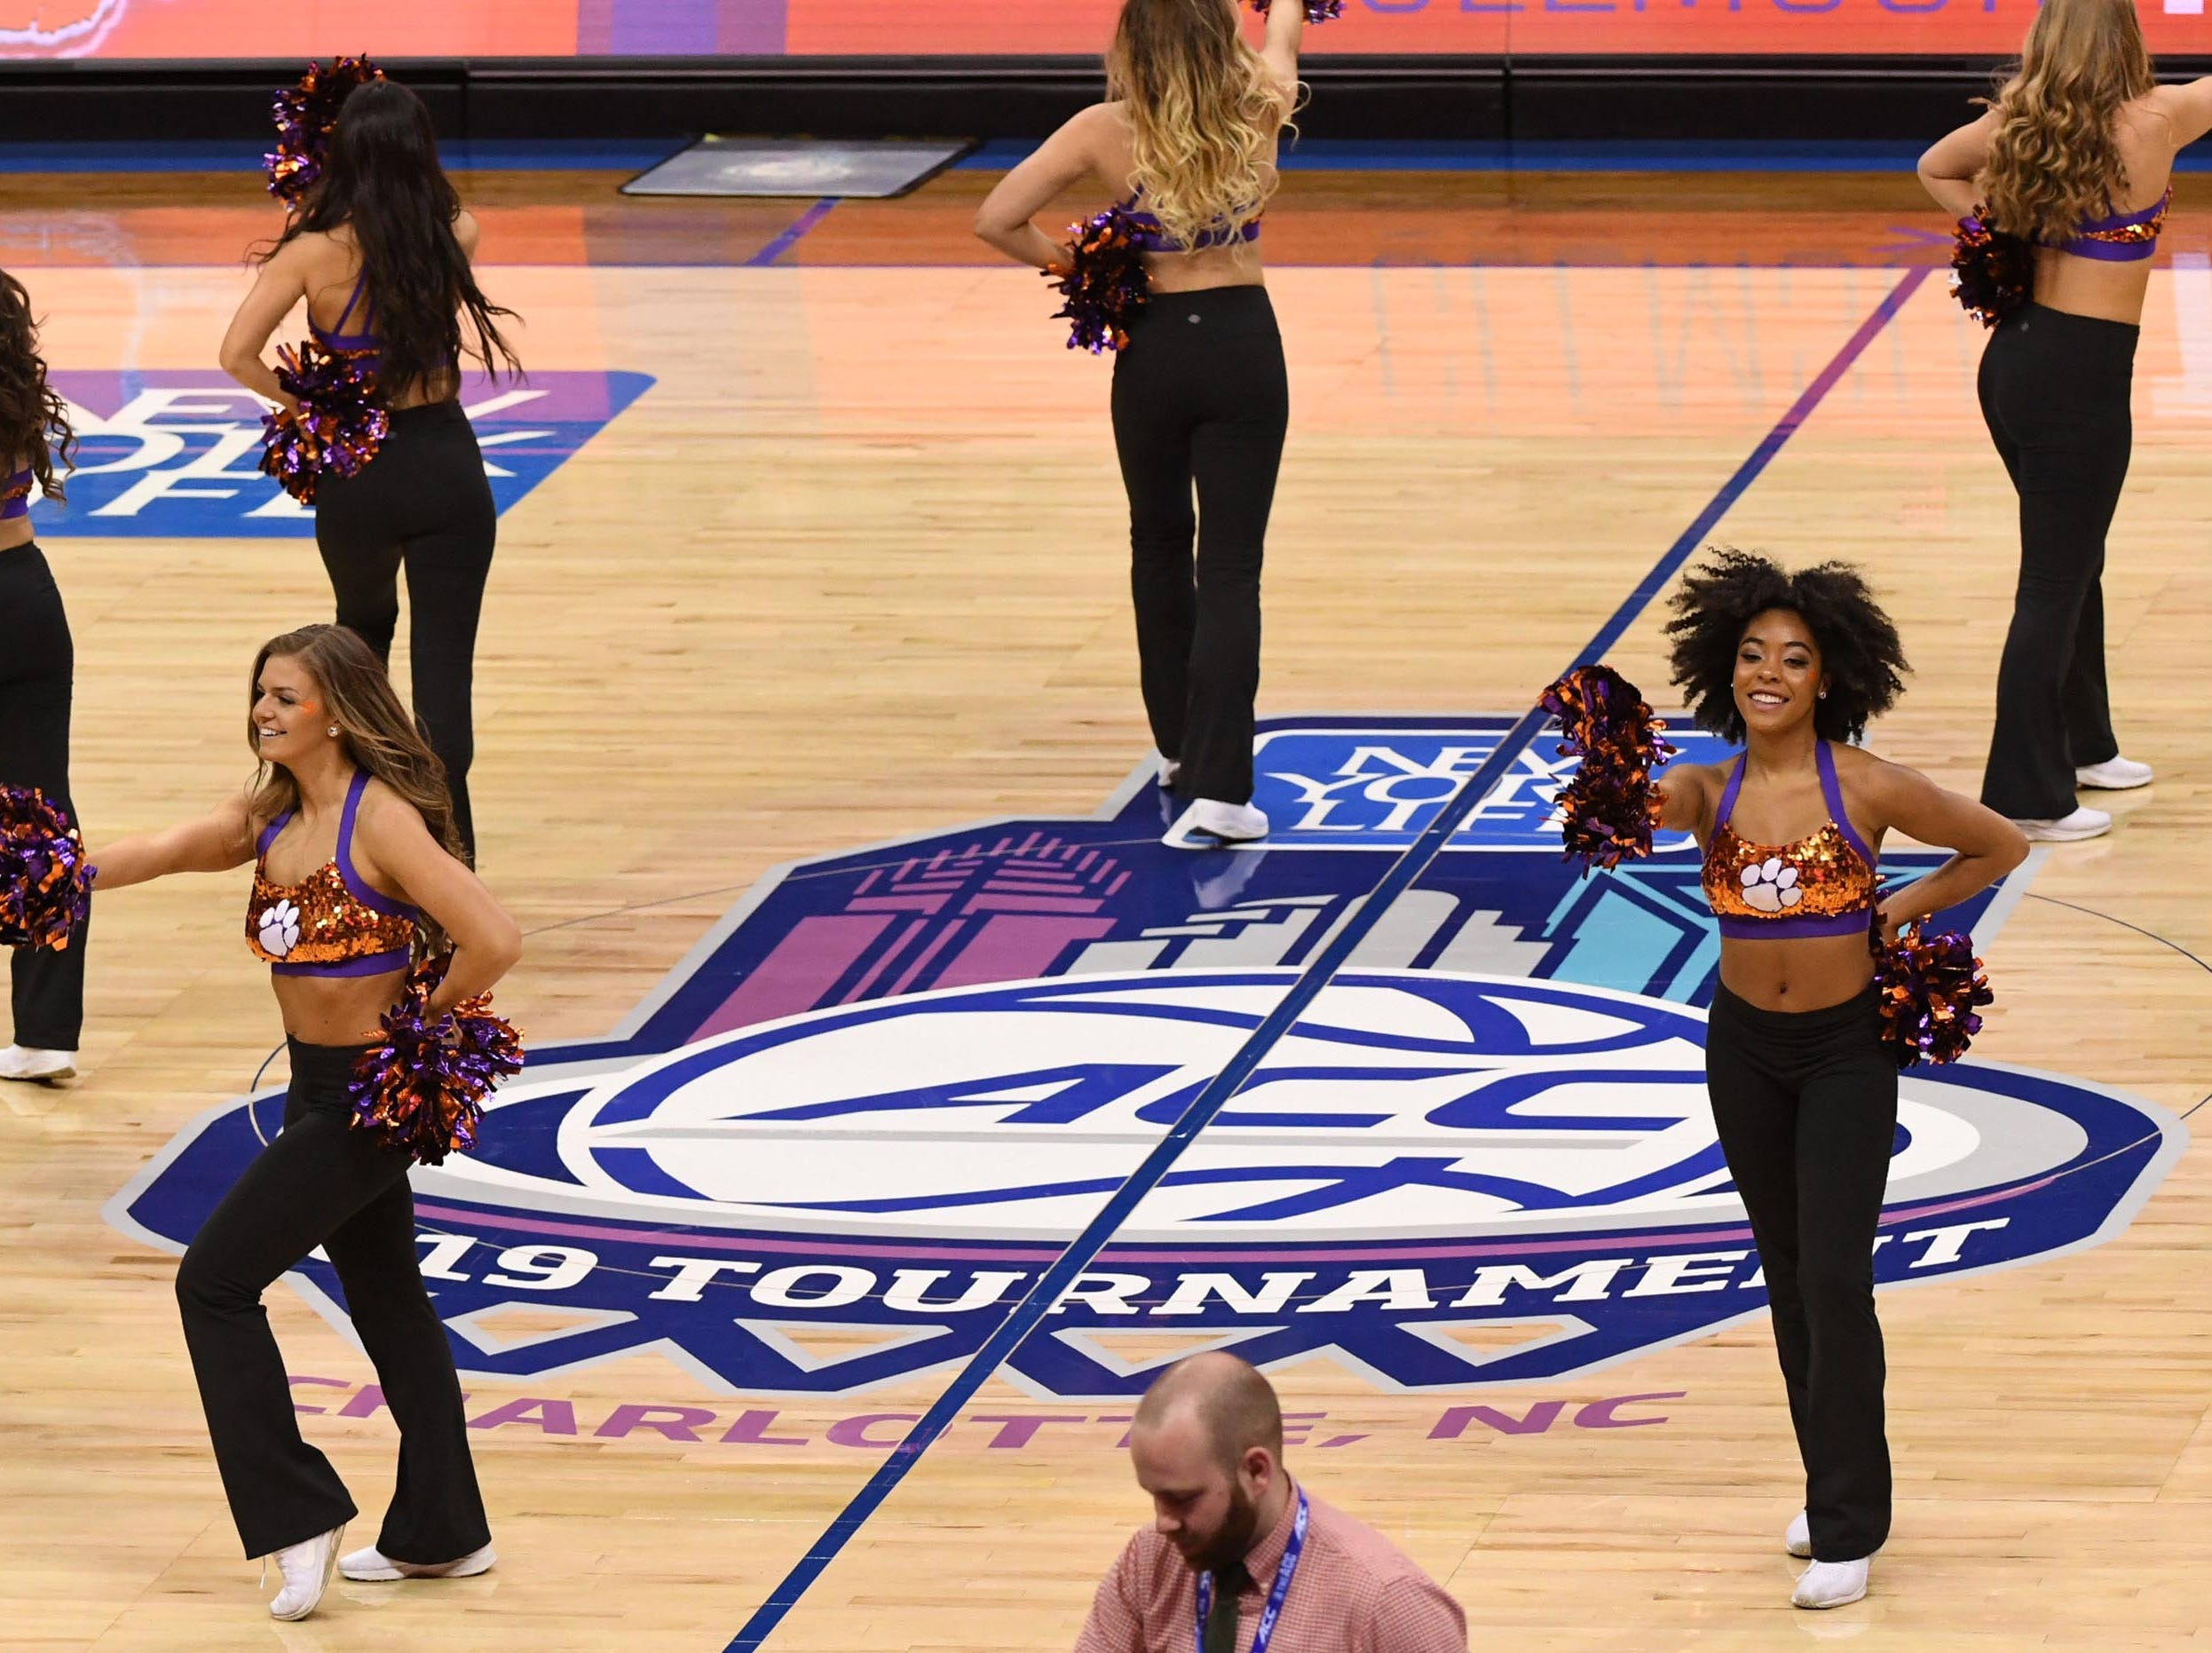 Clemson Rally Cats perform at a break during the second half at the Spectrum Center in Charlotte, N.C. Tuesday, March 12, 2019.